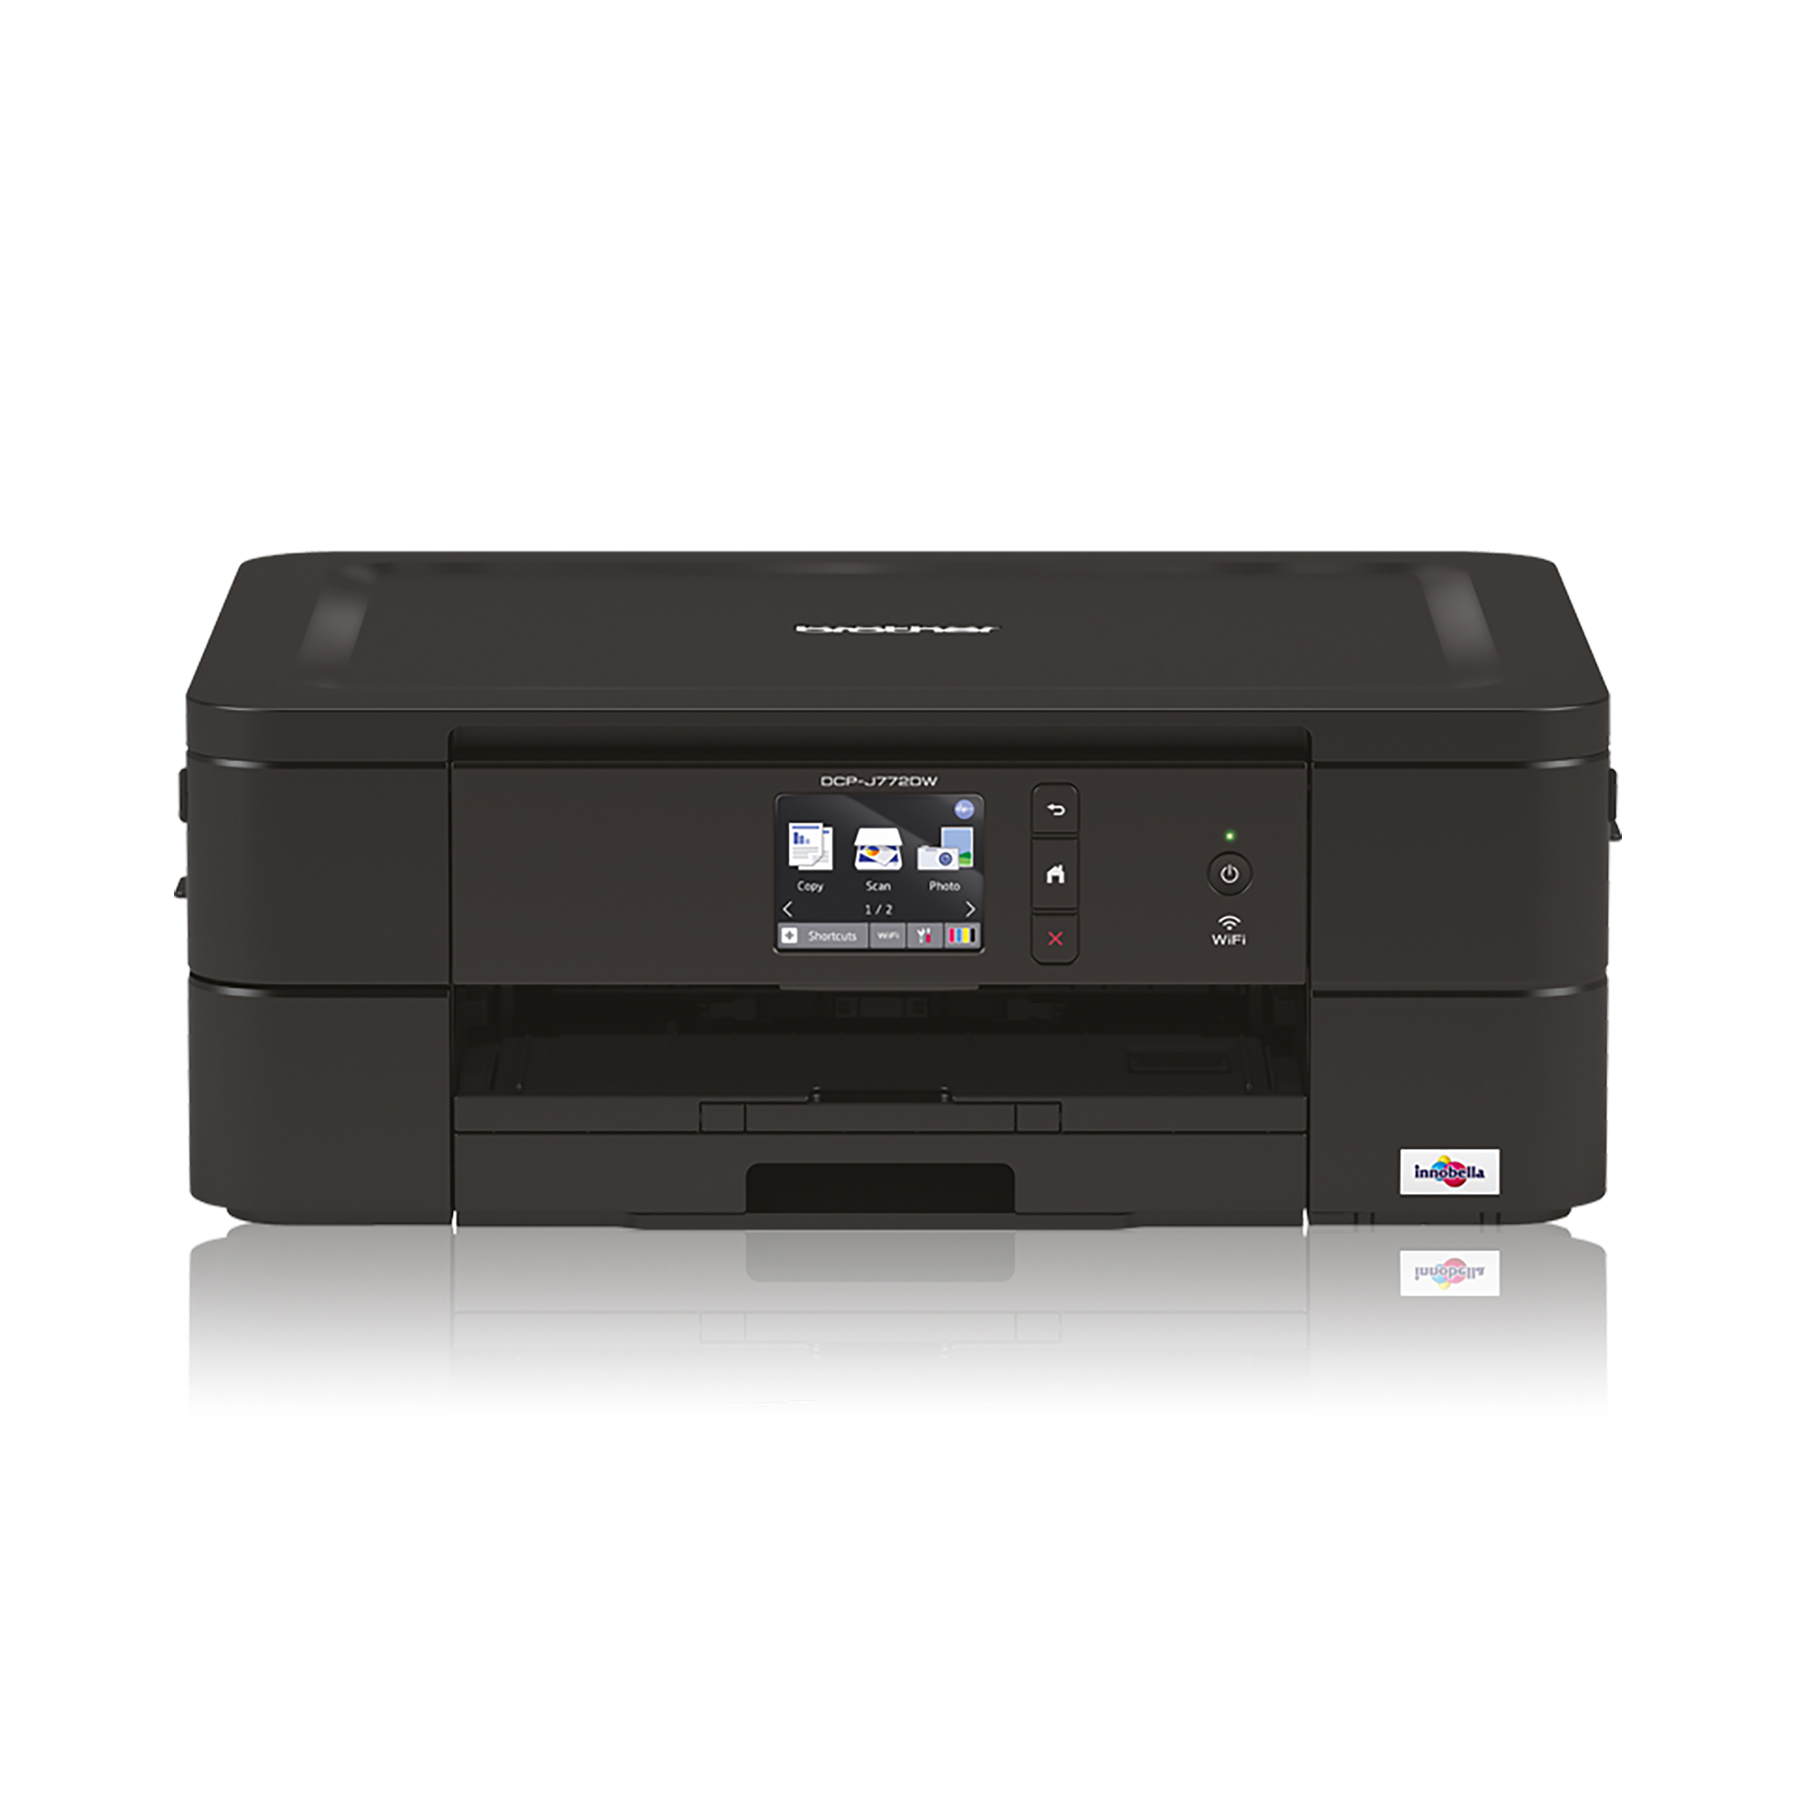 Multi function printers Brother DCP-J772DW Inkjet Printer 3 in 1 Copier Scanner LCD Display Ref DCP-J772DW